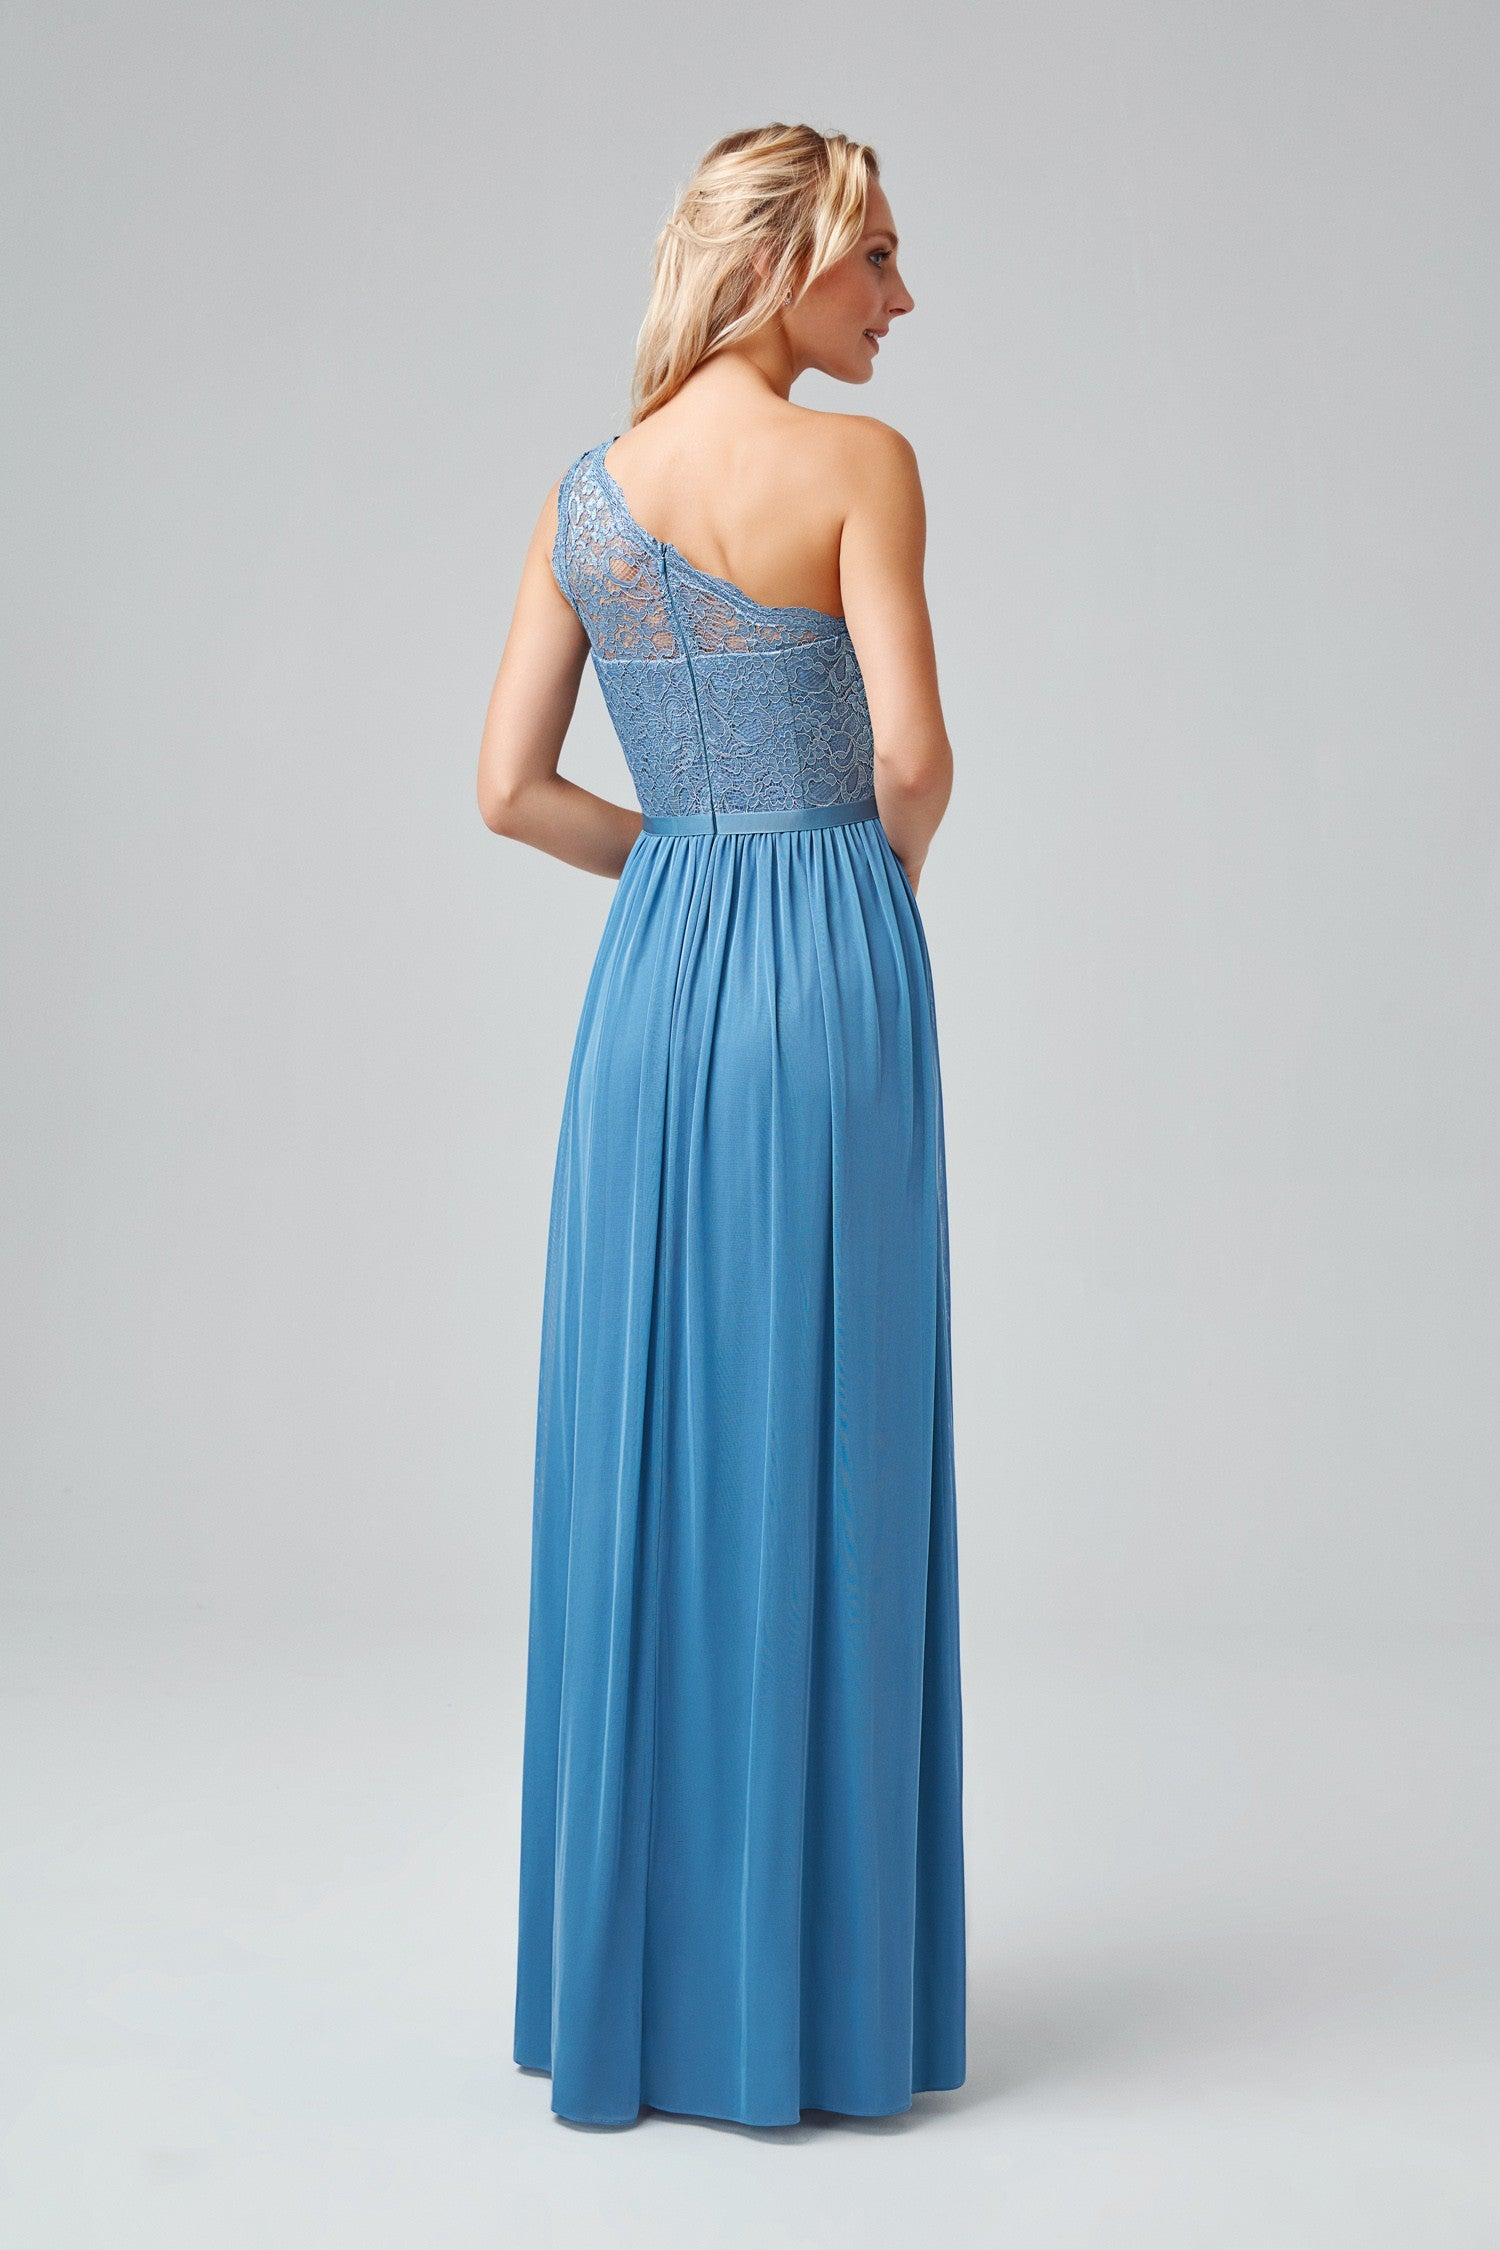 Long One Shoulder Metallic Lace and Mesh Dress-F17063M